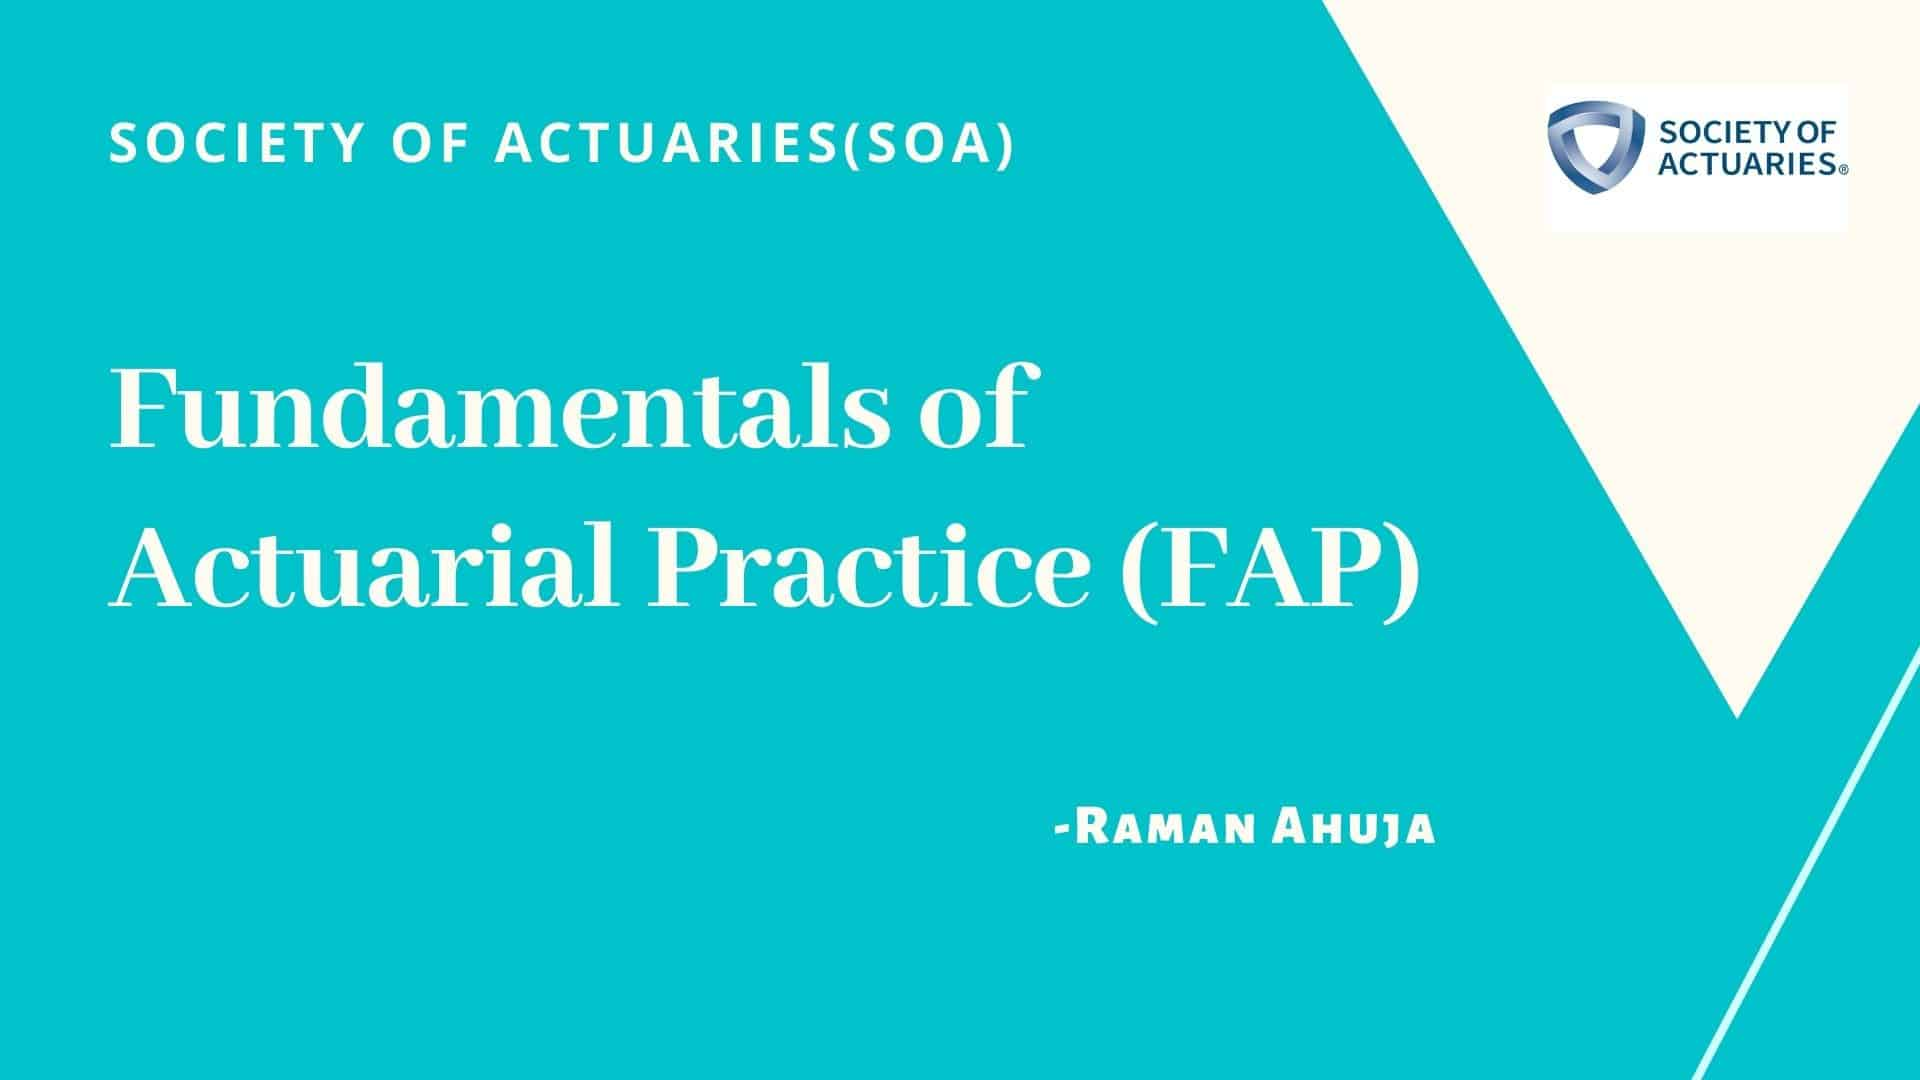 Fundamentals of Actuarial Practice (FAP)